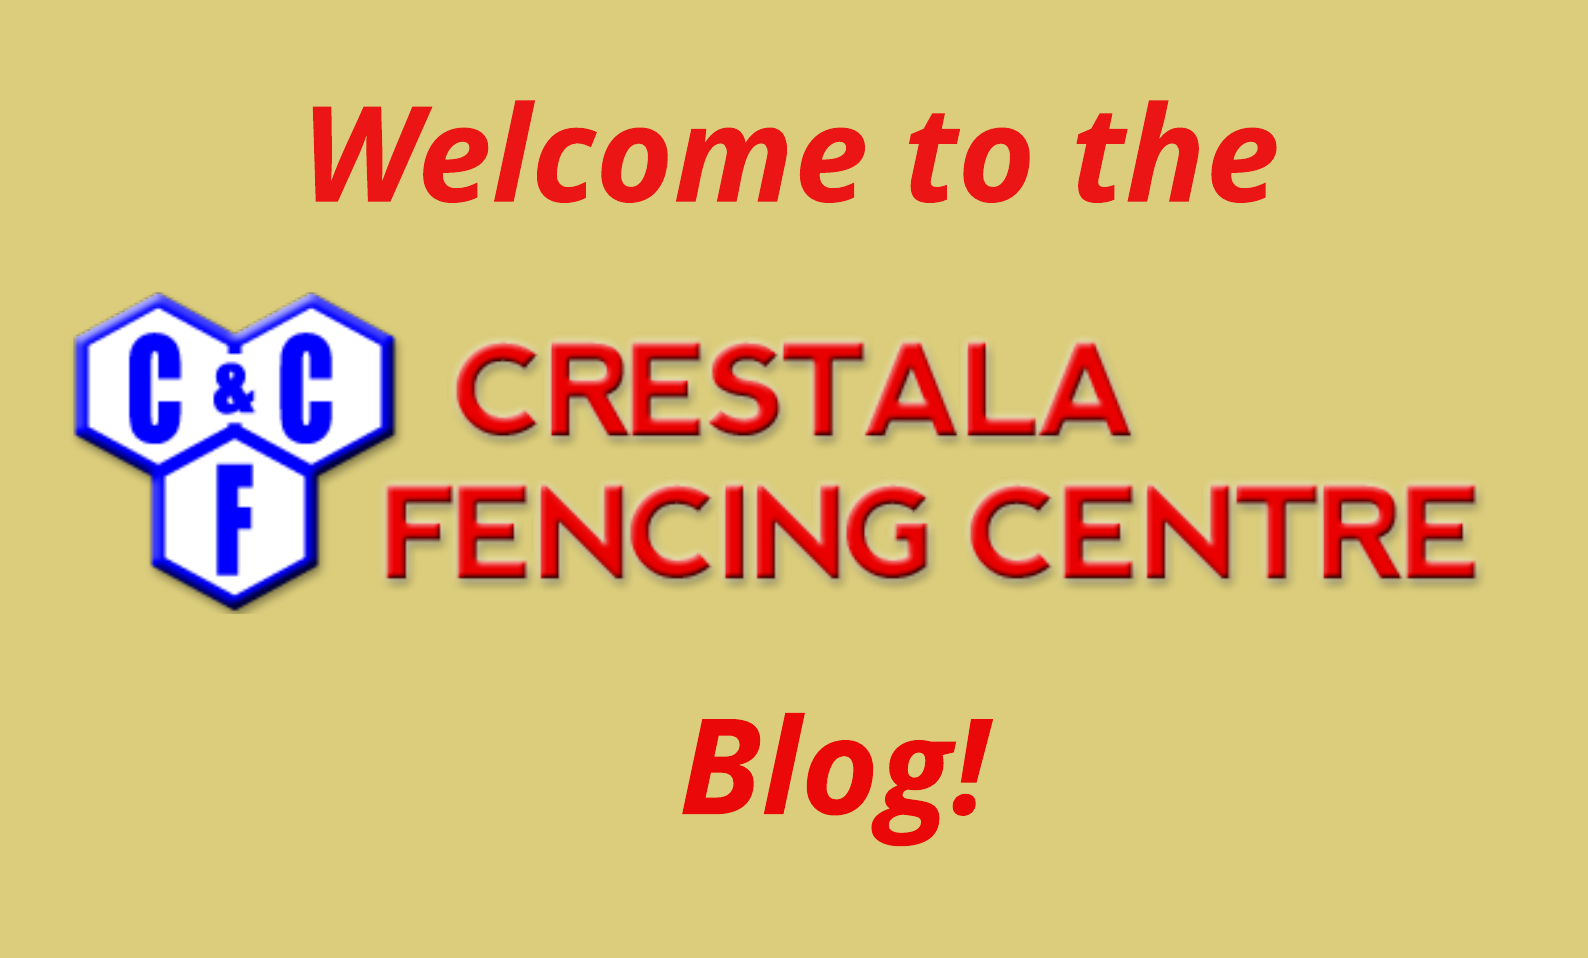 Welcome to Crestala Fencing Centres Blog!